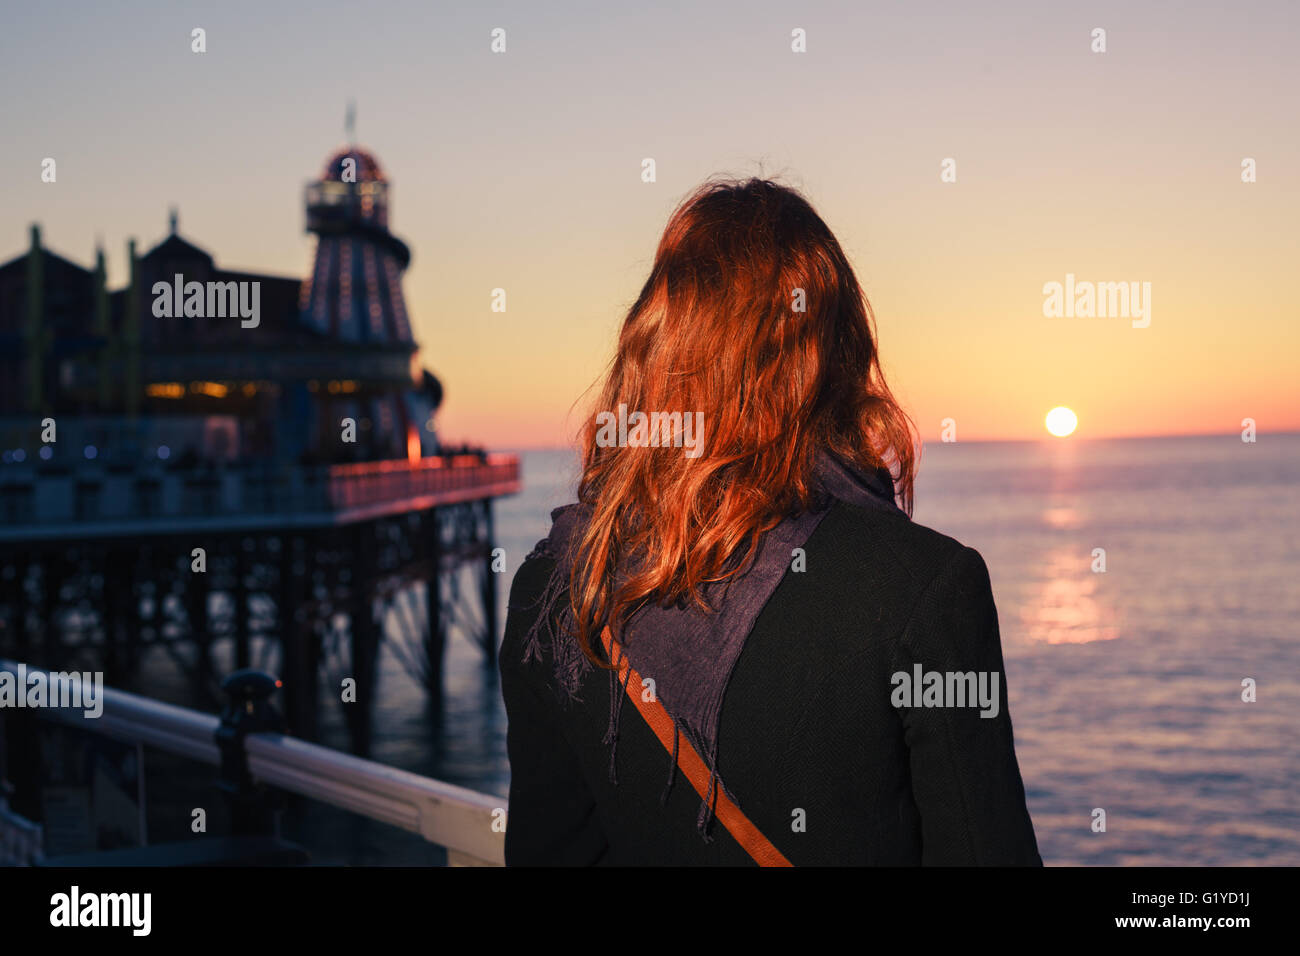 A young woman is walking on the coast at sunset and is admiring the sea - Stock Image